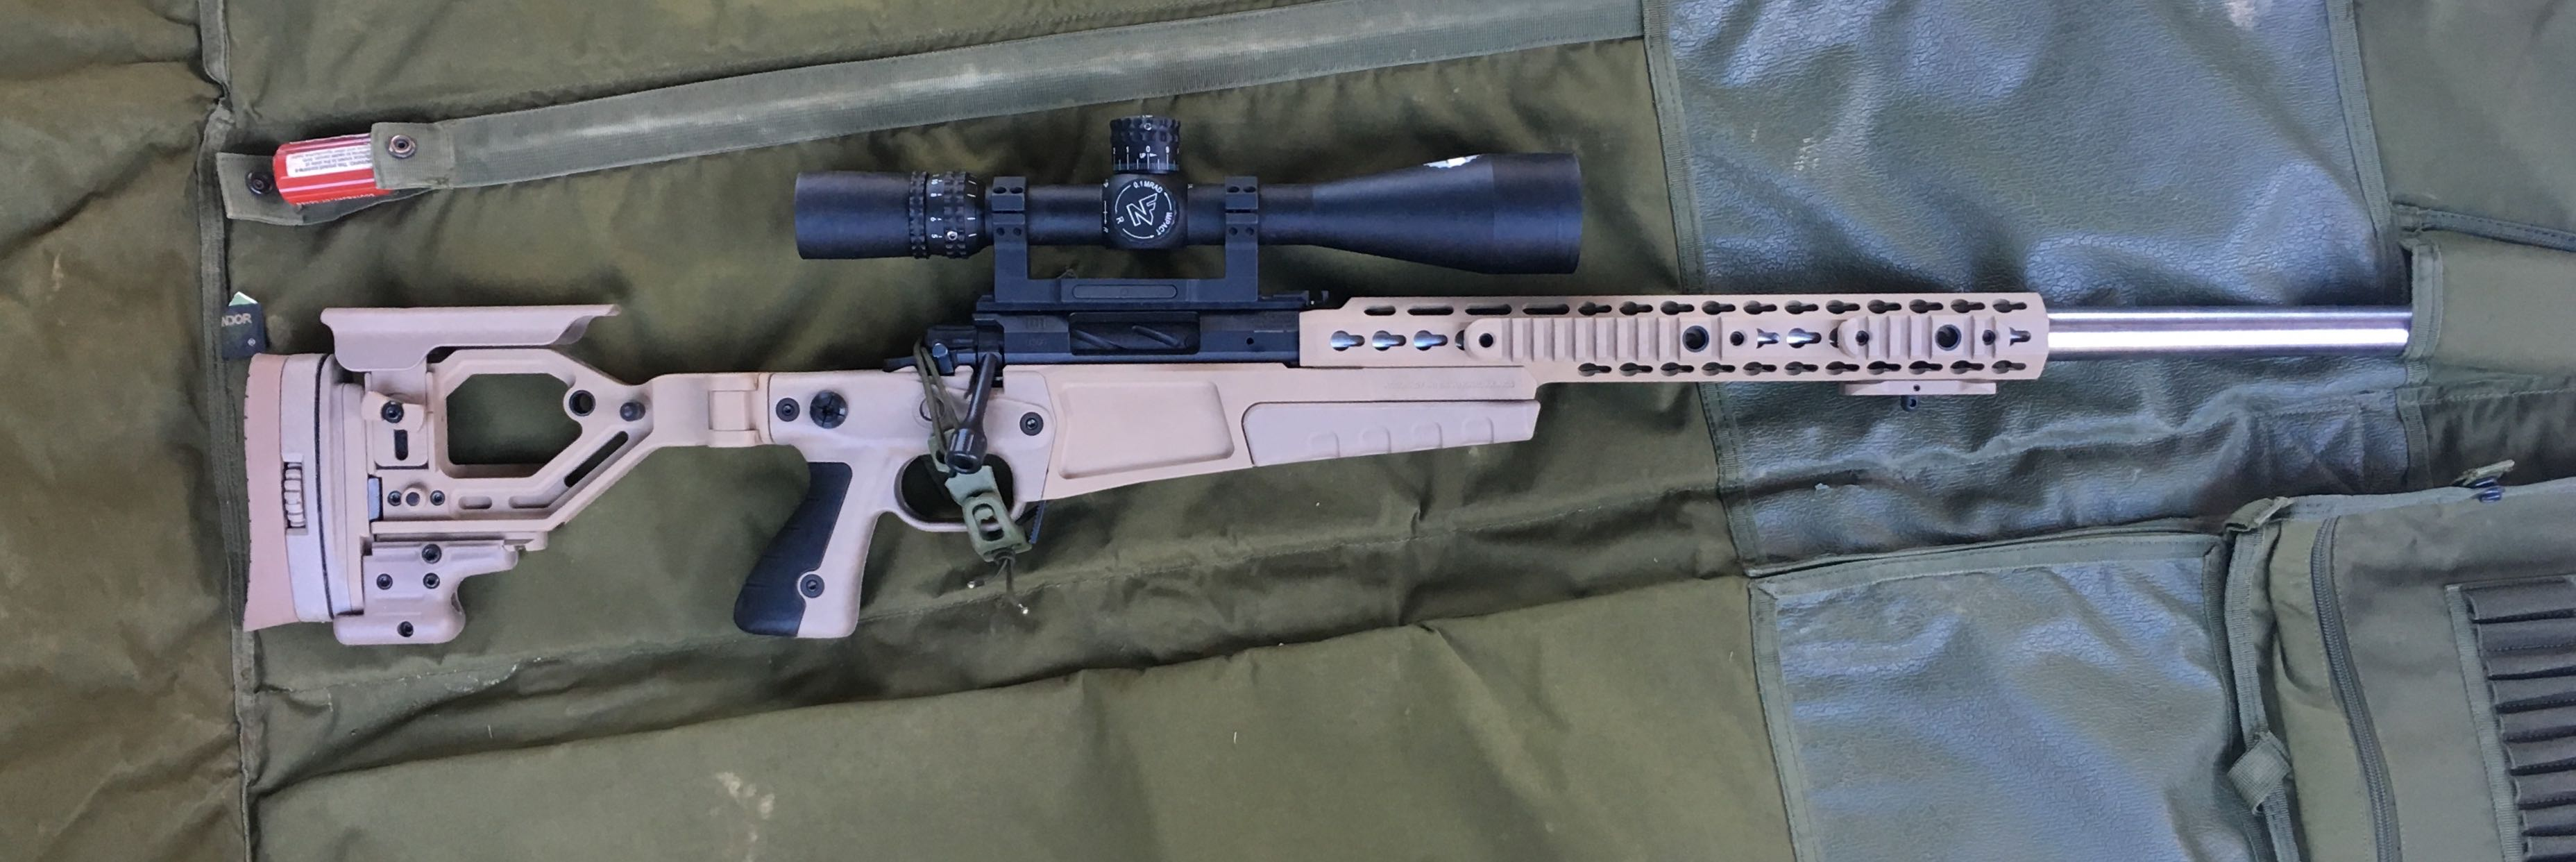 u300-aics-ax-chassis-in-drag-bag-6-creedmoor